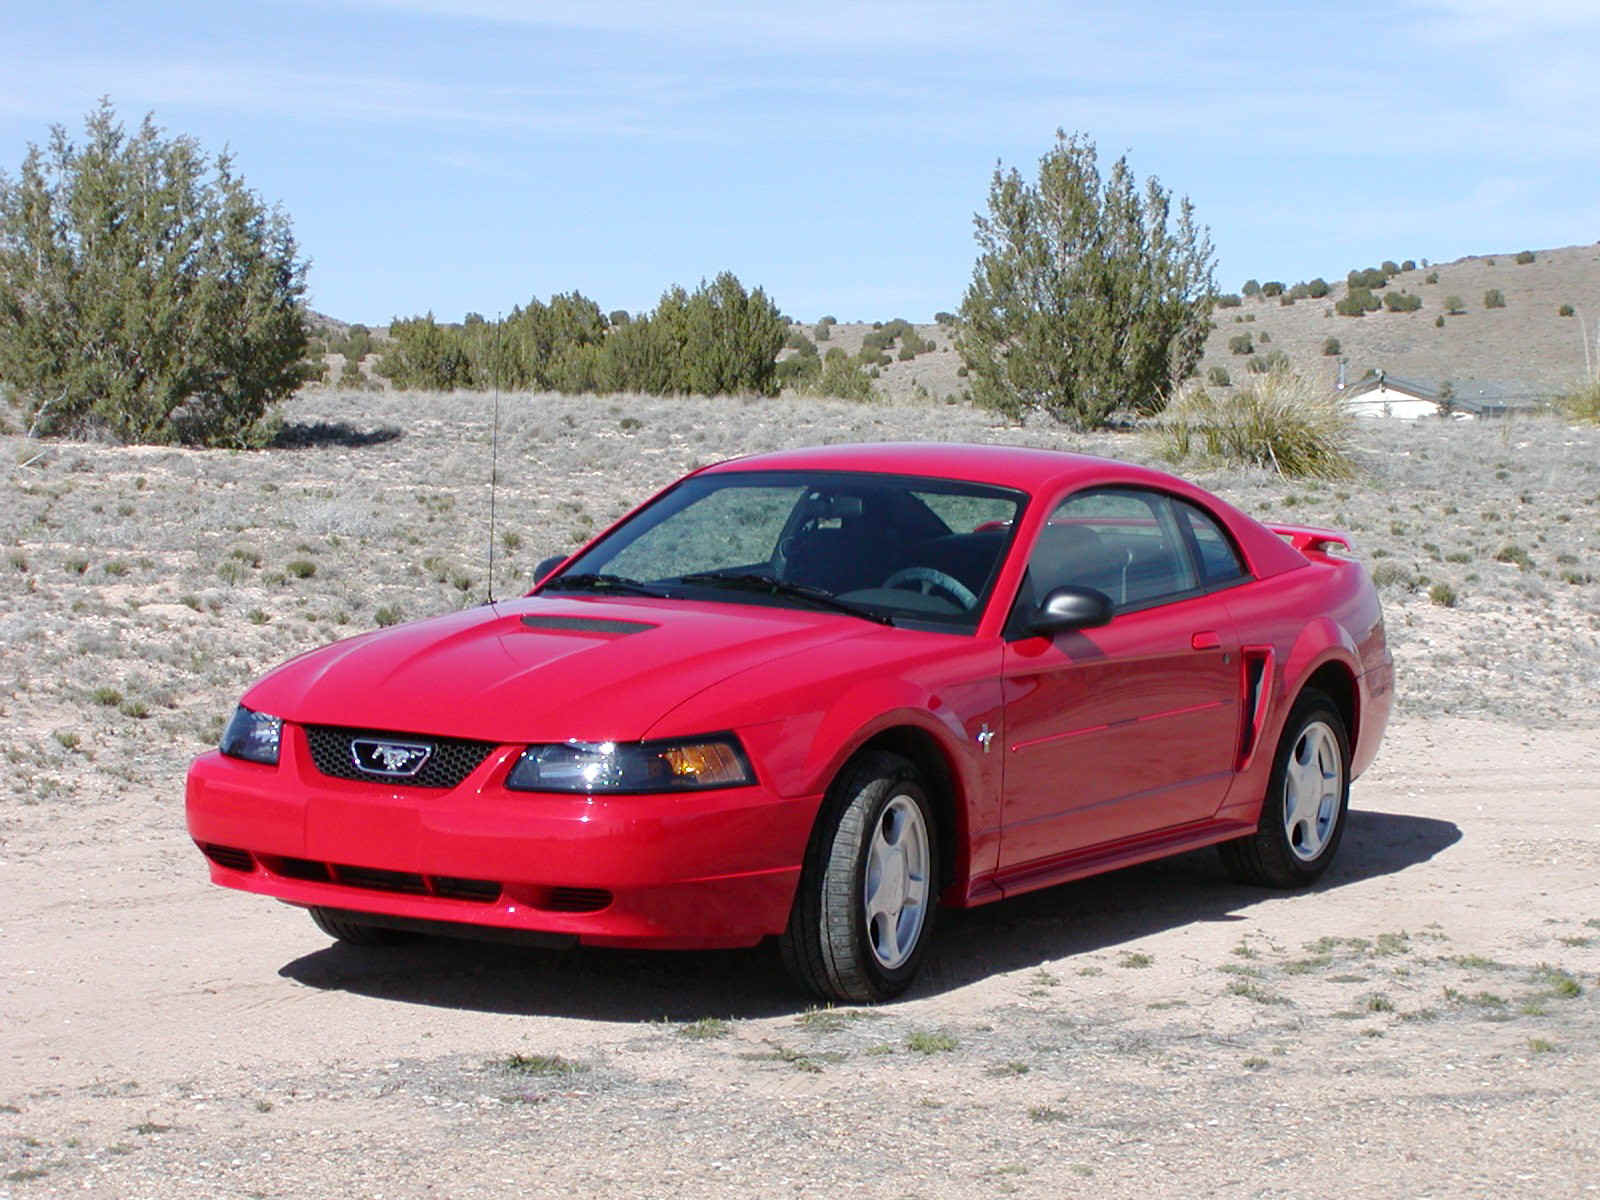 2002 Ford Mustang Exterior Pictures Cargurus